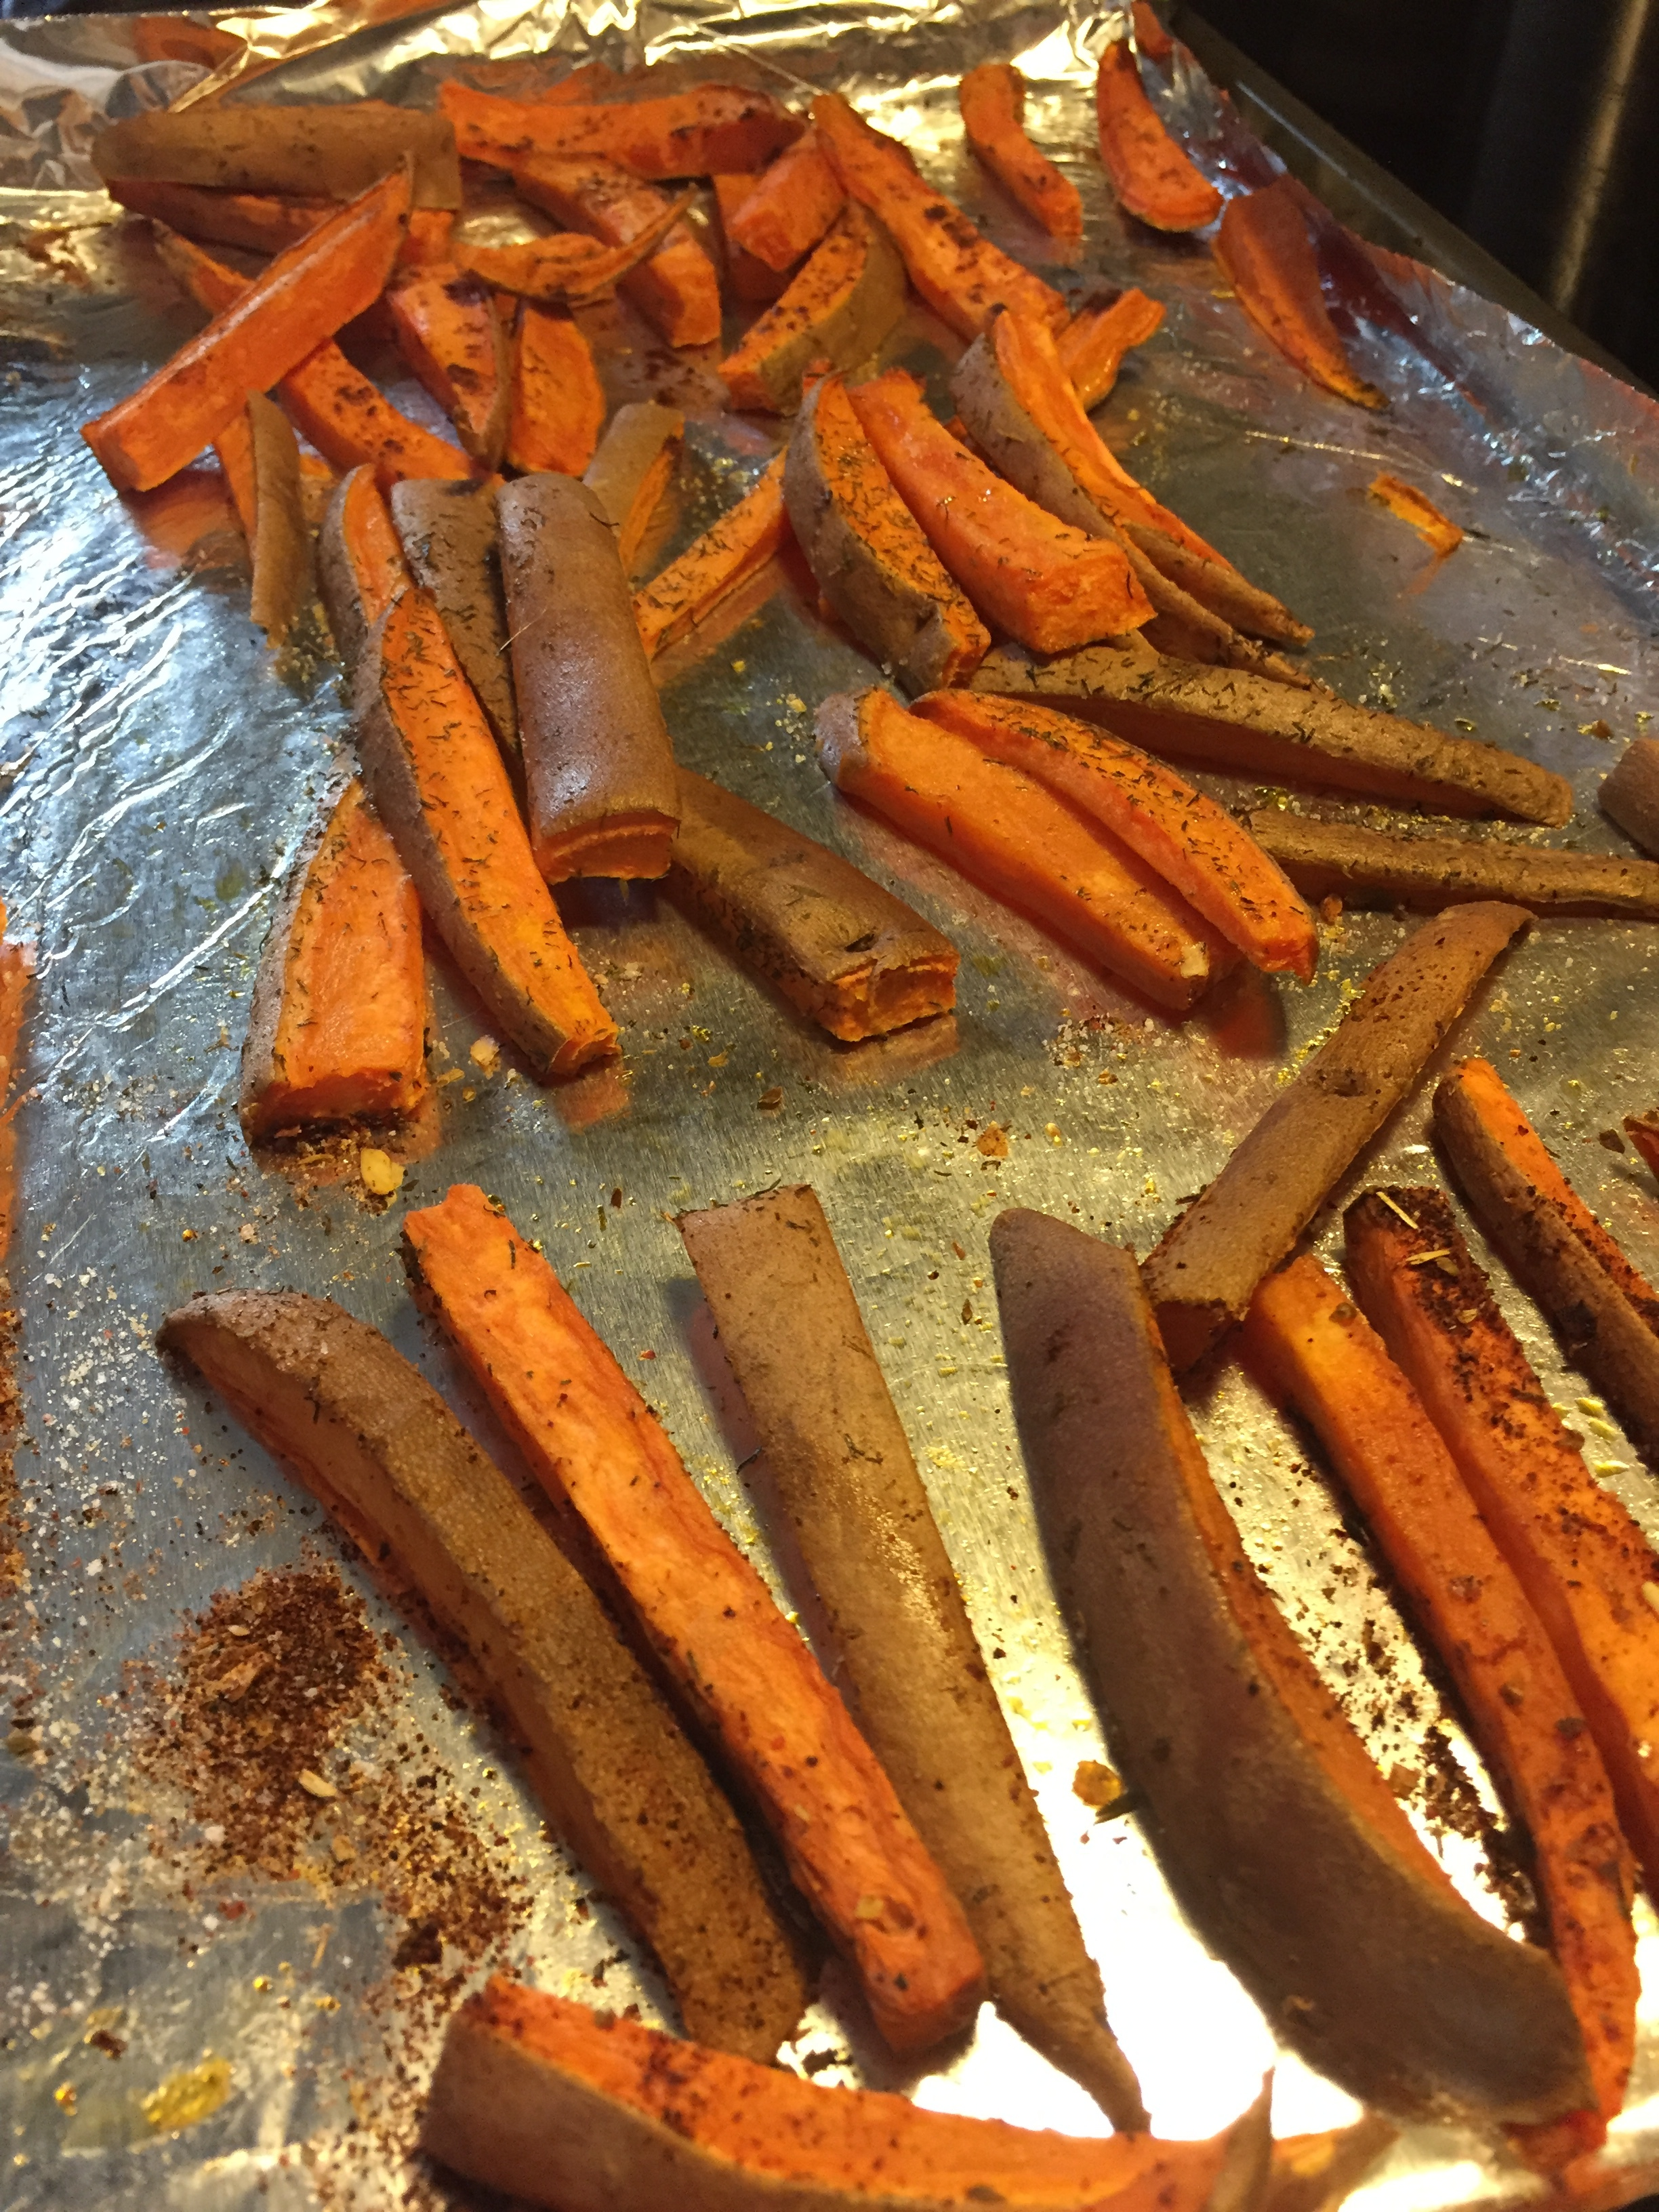 Sweet potato fries - as simple as slicing a sweet potato, tossing with olive oil and seasoning to bake! Try a chili spice, dill, cumin or curry on your next batch!